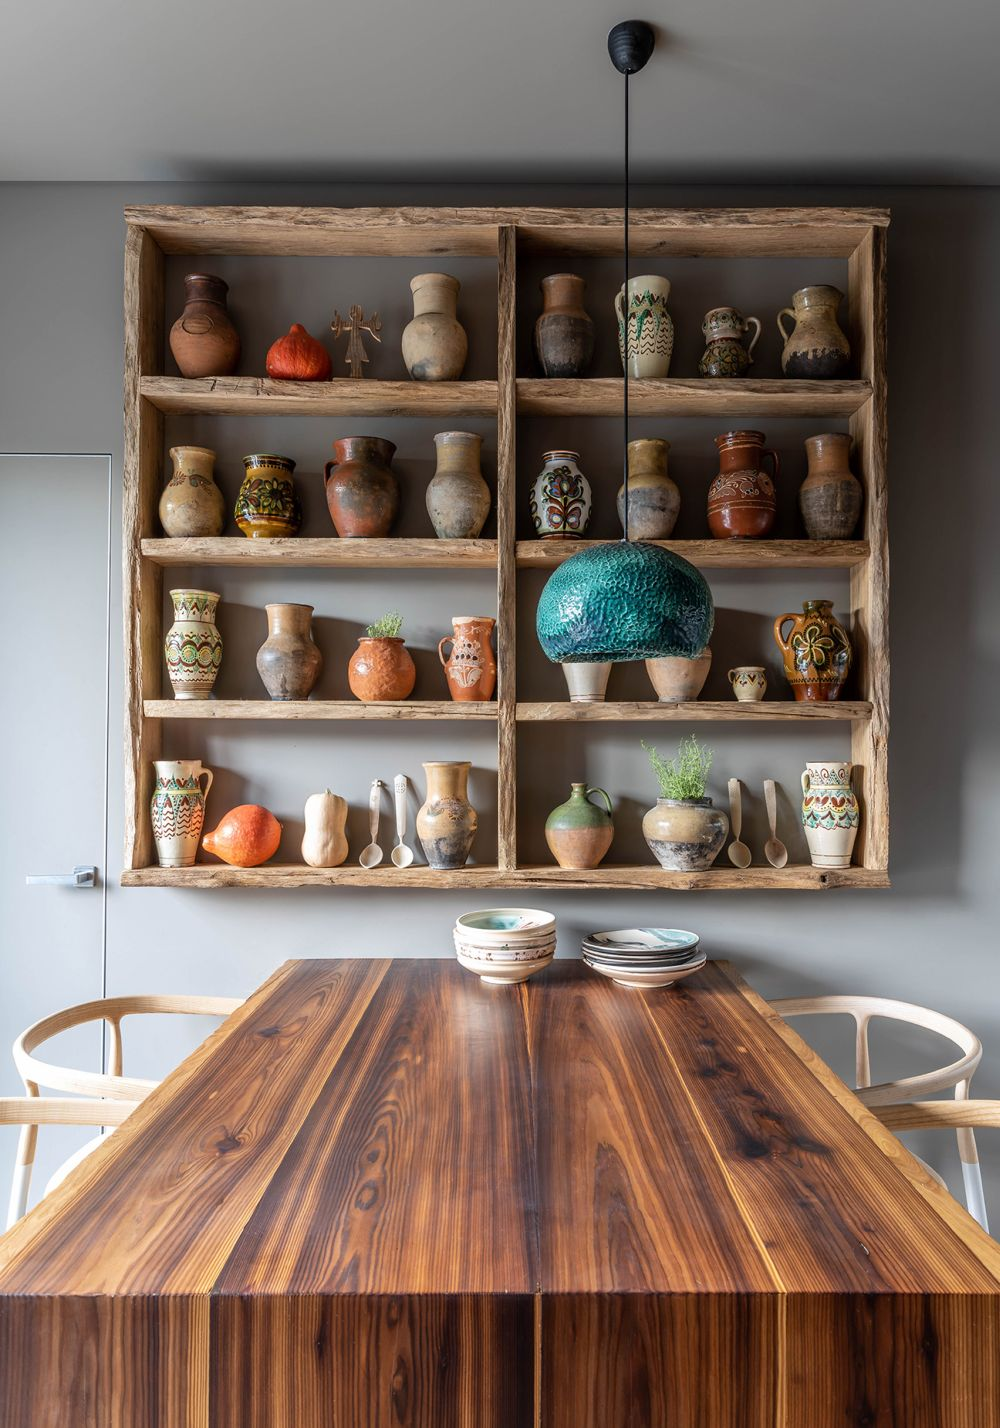 The shelves that hold this amazing collection of ceramics are made of salvaged wood from abandoned structures